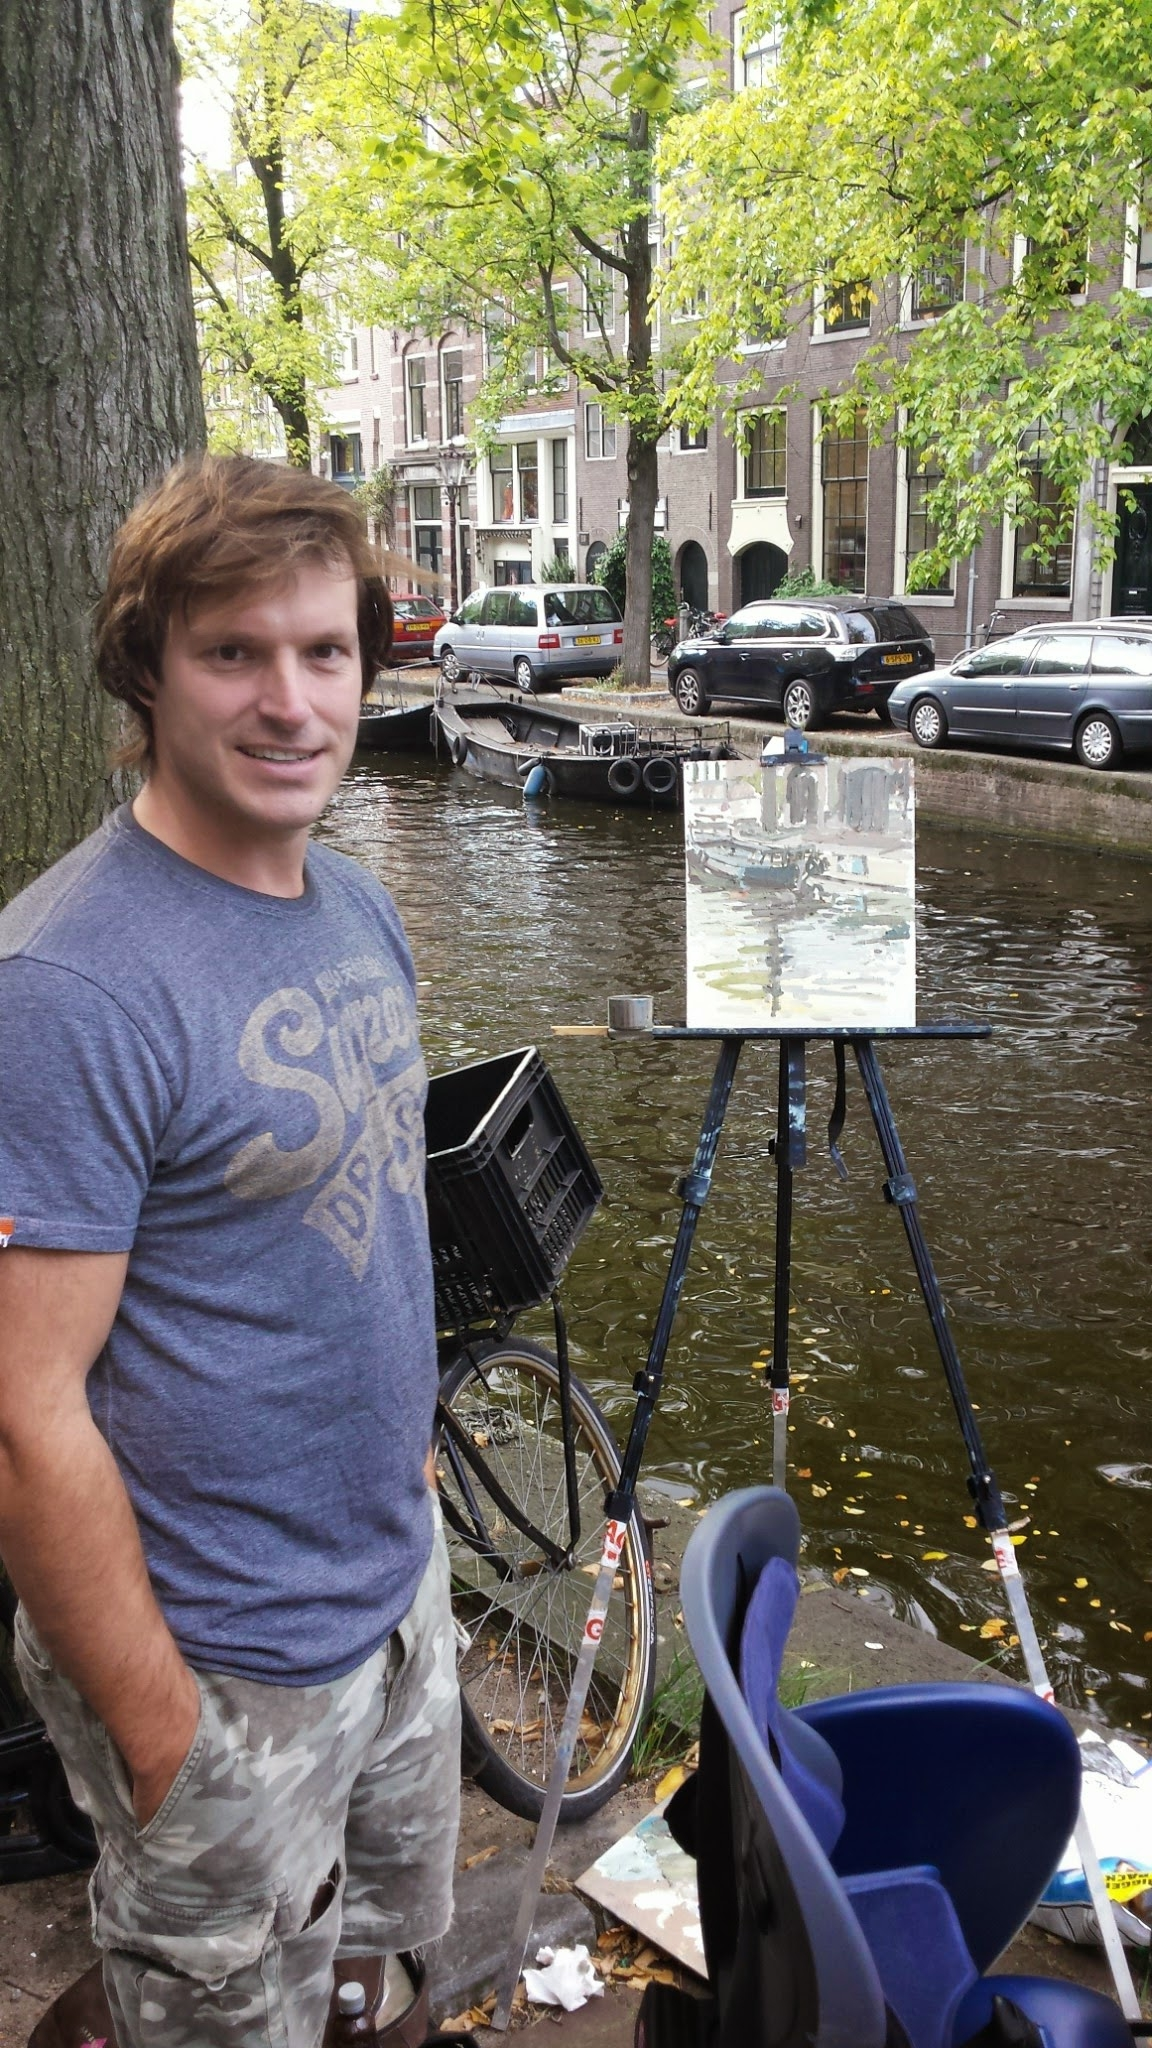 In Amsterdam painting near the Leidesplein